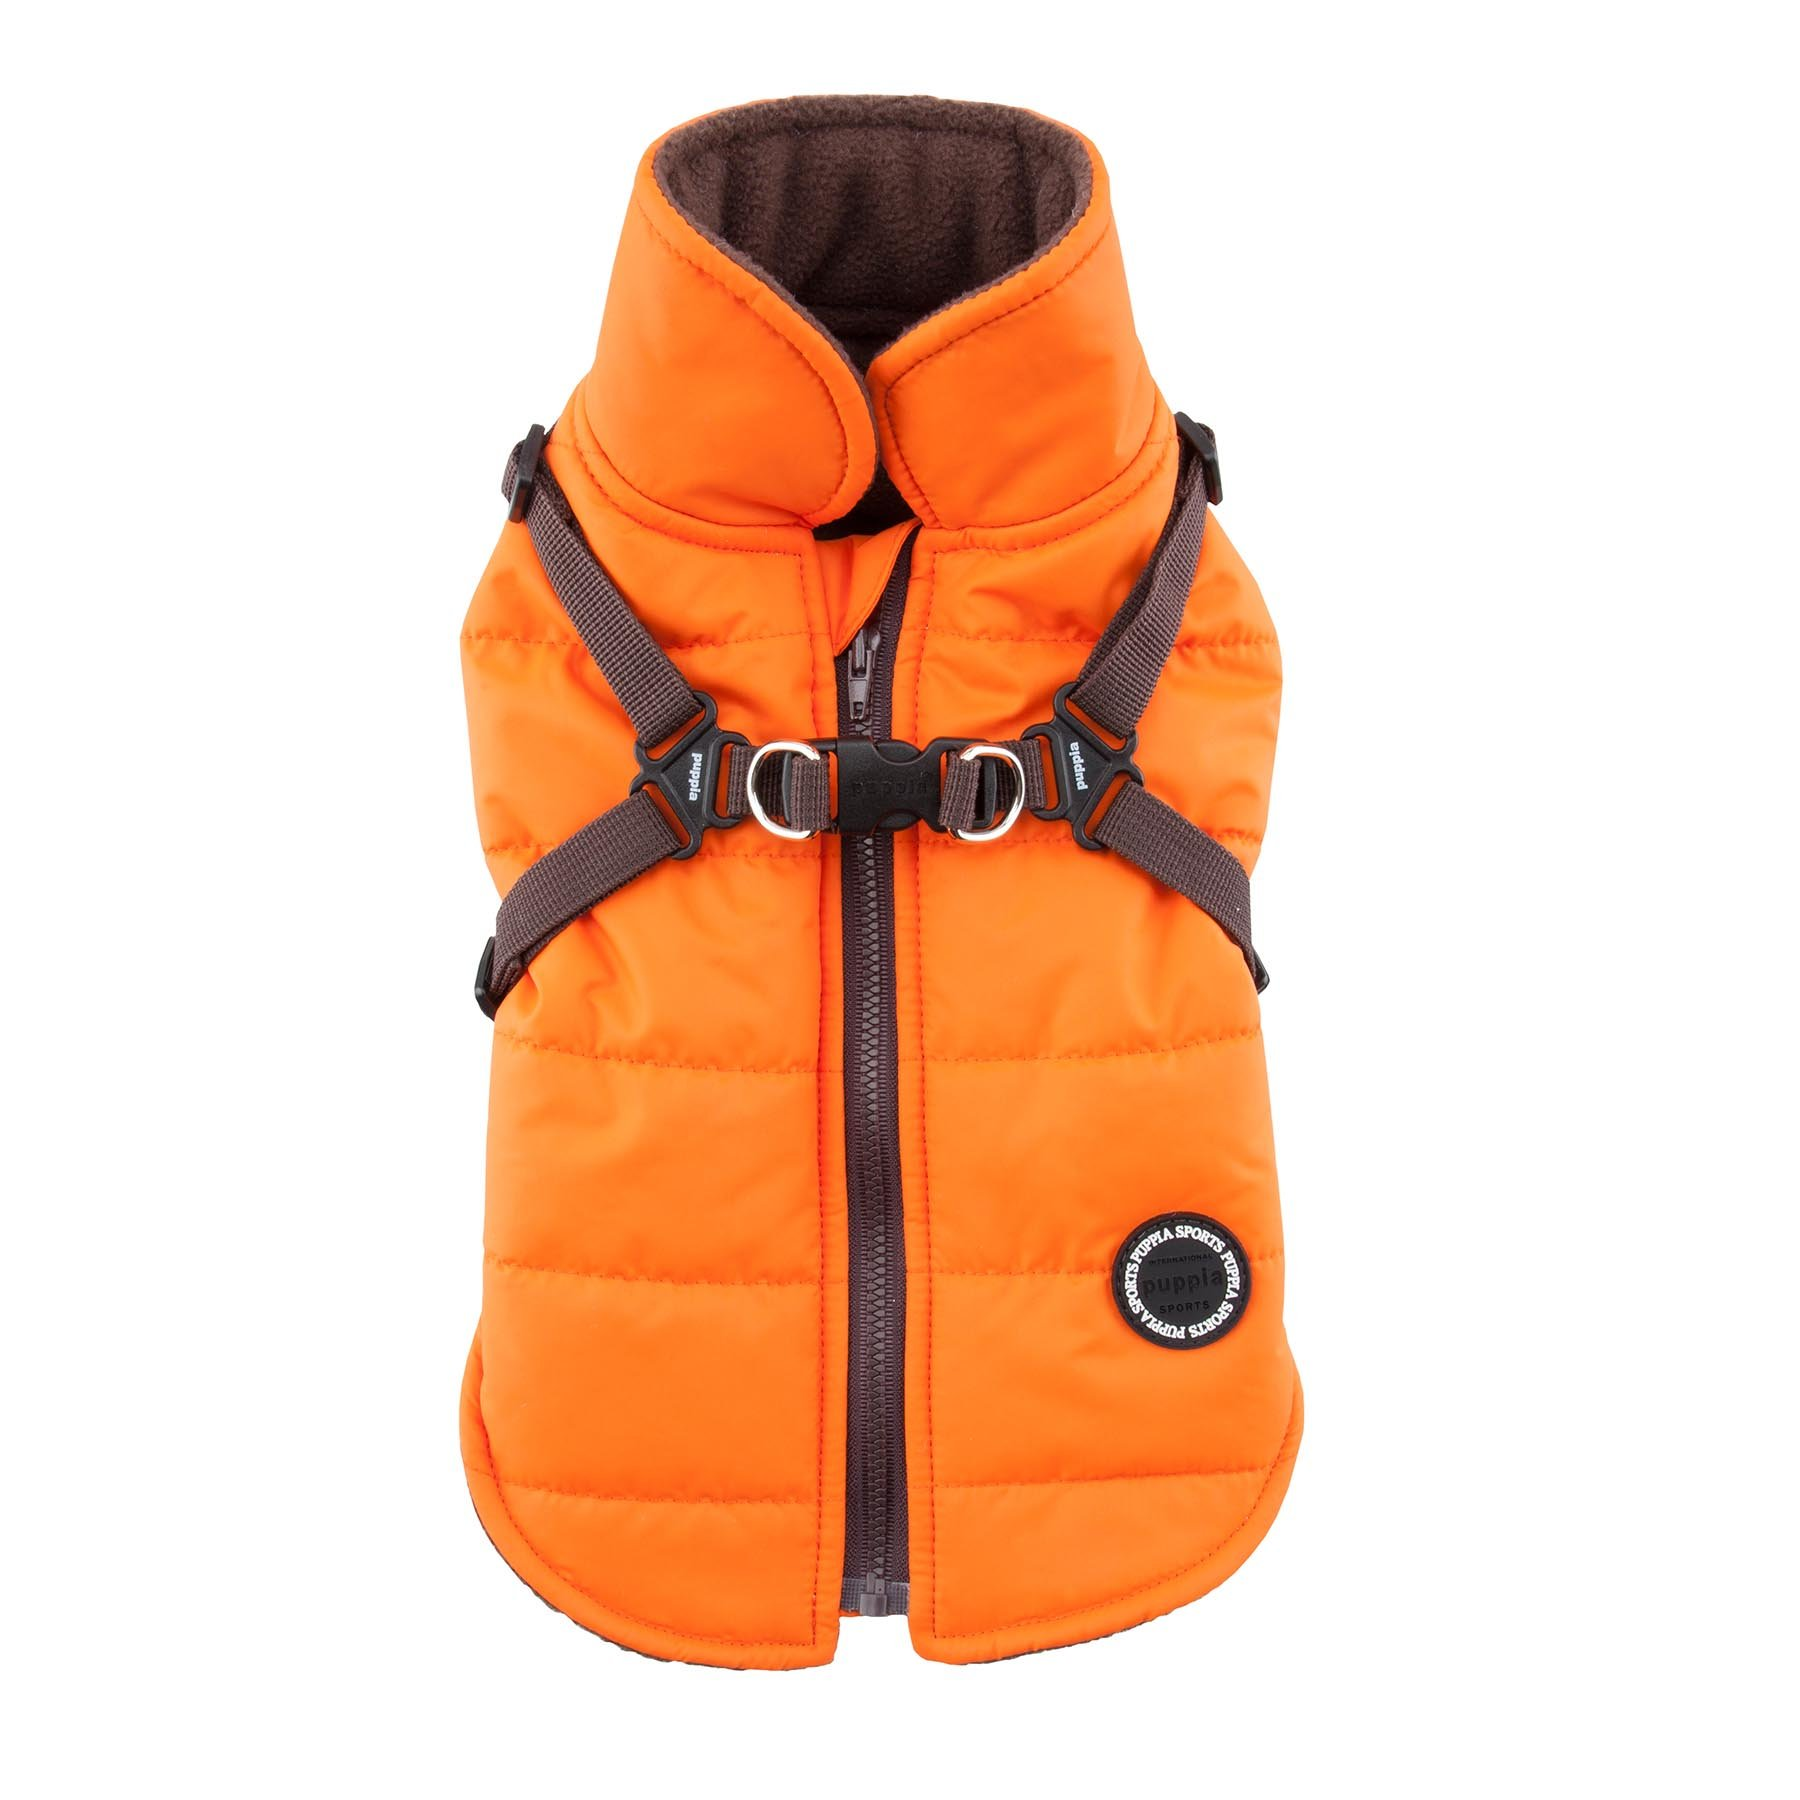 Puppia PAPD-VT1366-OR-XL Authentic Mountaineer II Winter Vest, X-Large, Orange